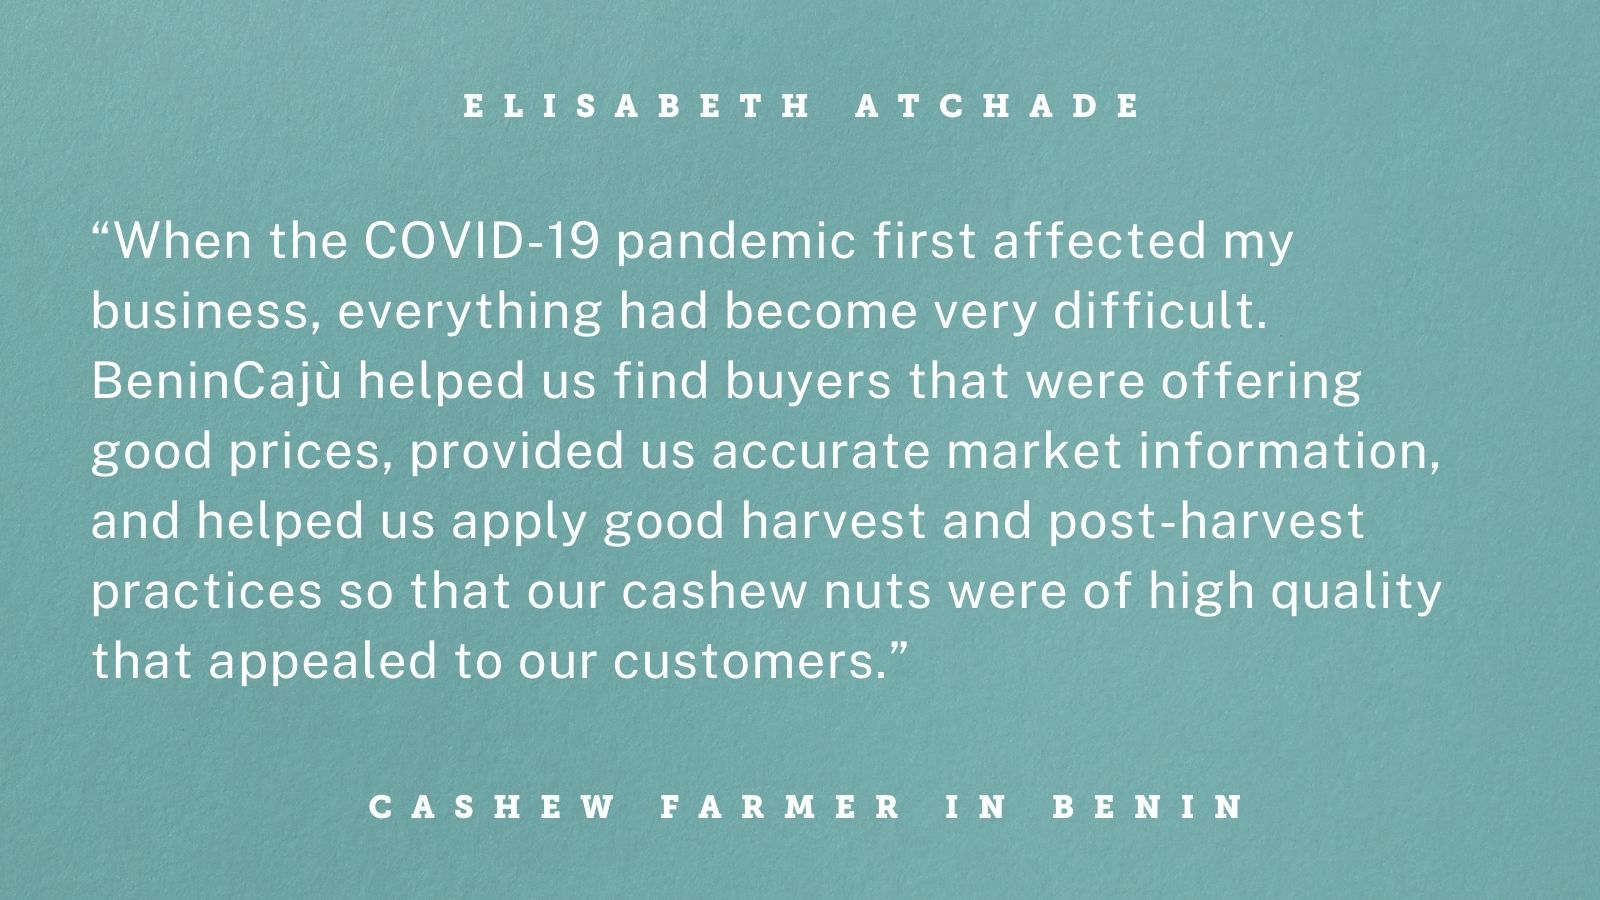 """Quote graphic with white text on teal background. Text reads """"When the COVID-19 pandemic first affected my business, everything had become very difficult. BeninCajù helped us find buyers that were offering good prices, provided us accurate market information, and helped us apply good harvest and post-harvest practices so that our cashew nuts were of high quality that appealed to our customers."""""""